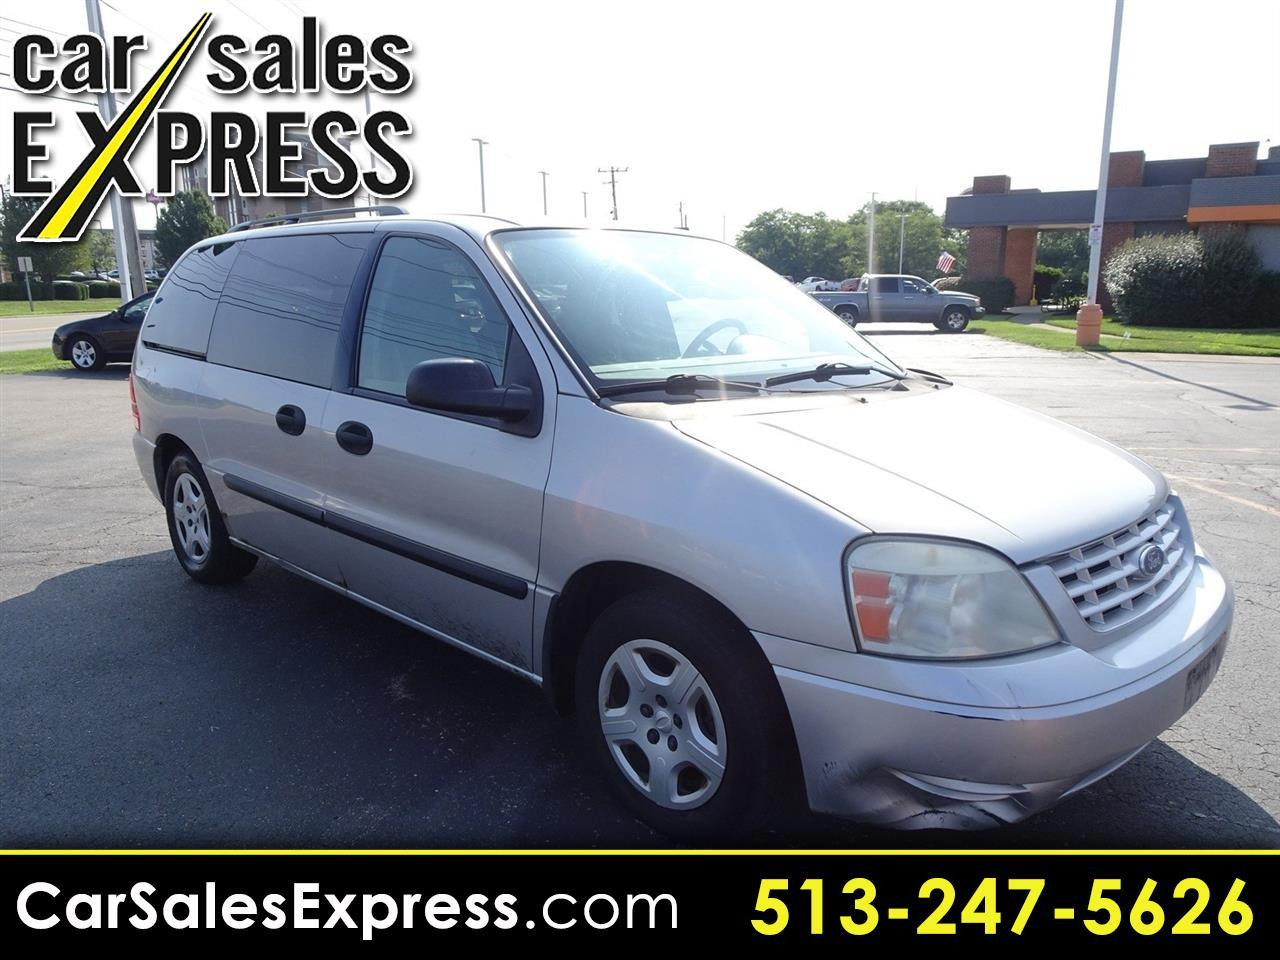 2005 Ford Freestar $1363